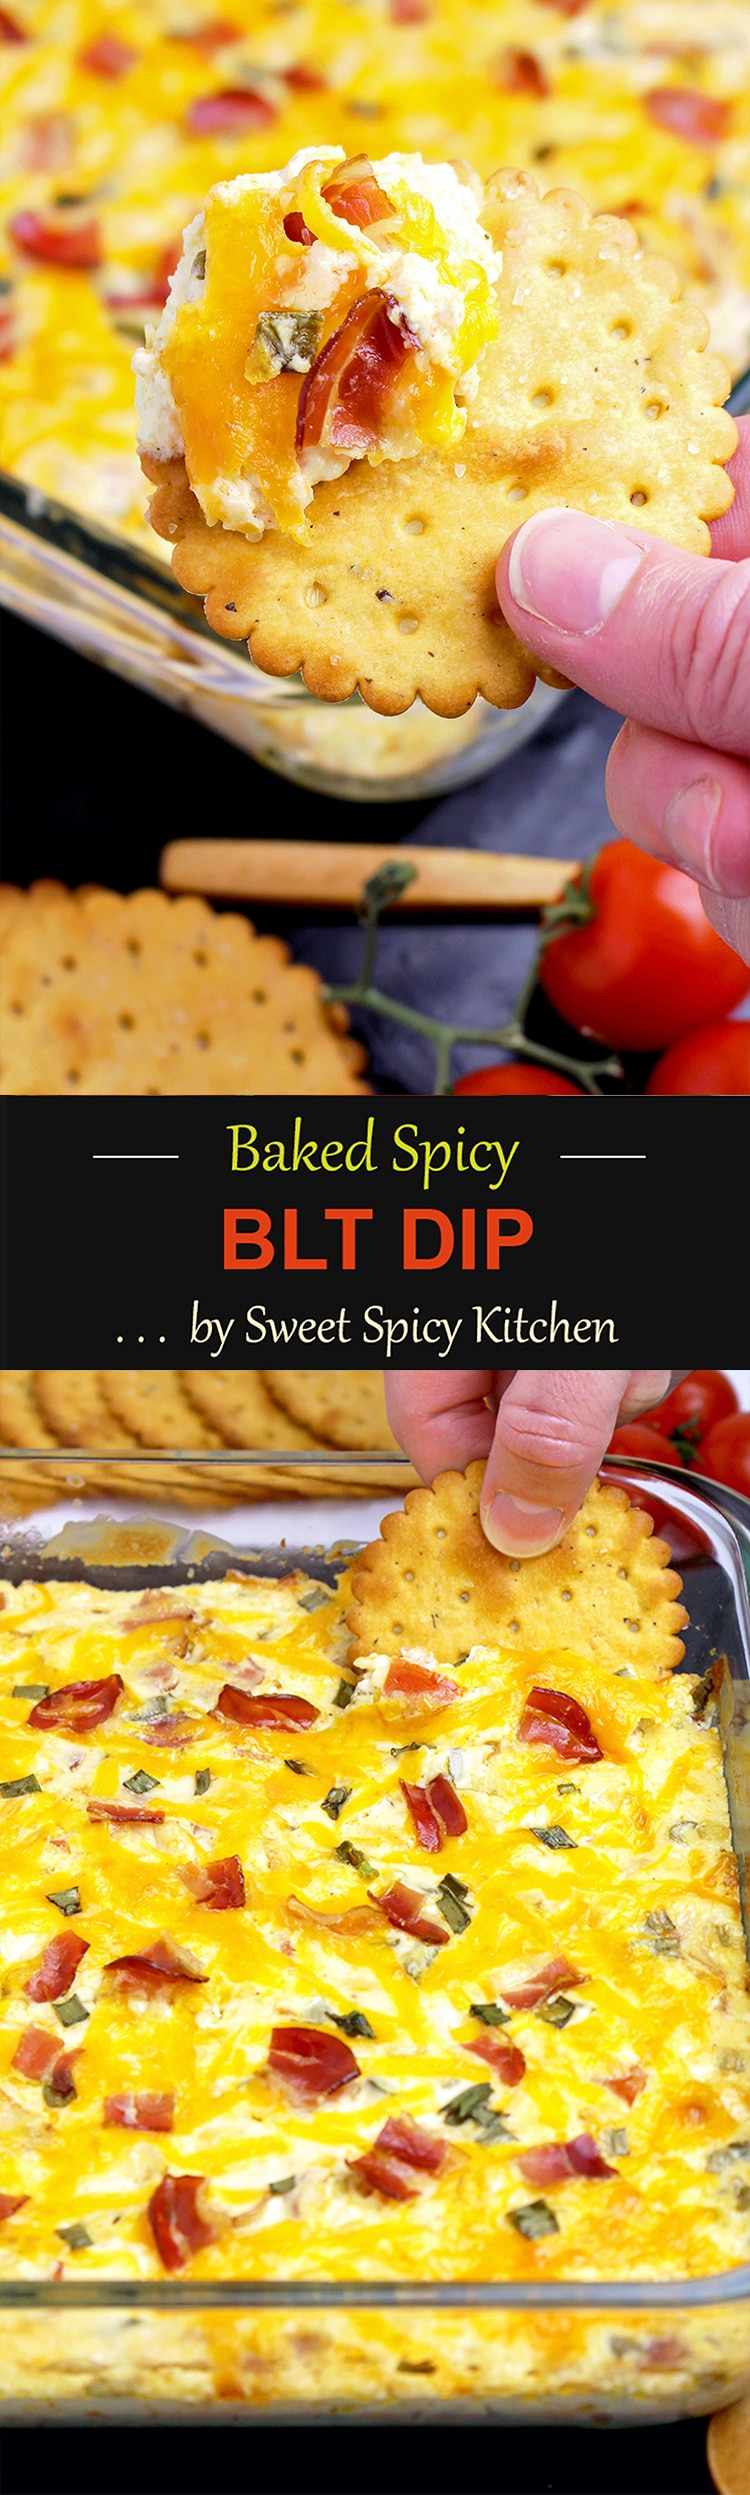 Untitled-1155 Baked Spicy BLT Dip Recipe